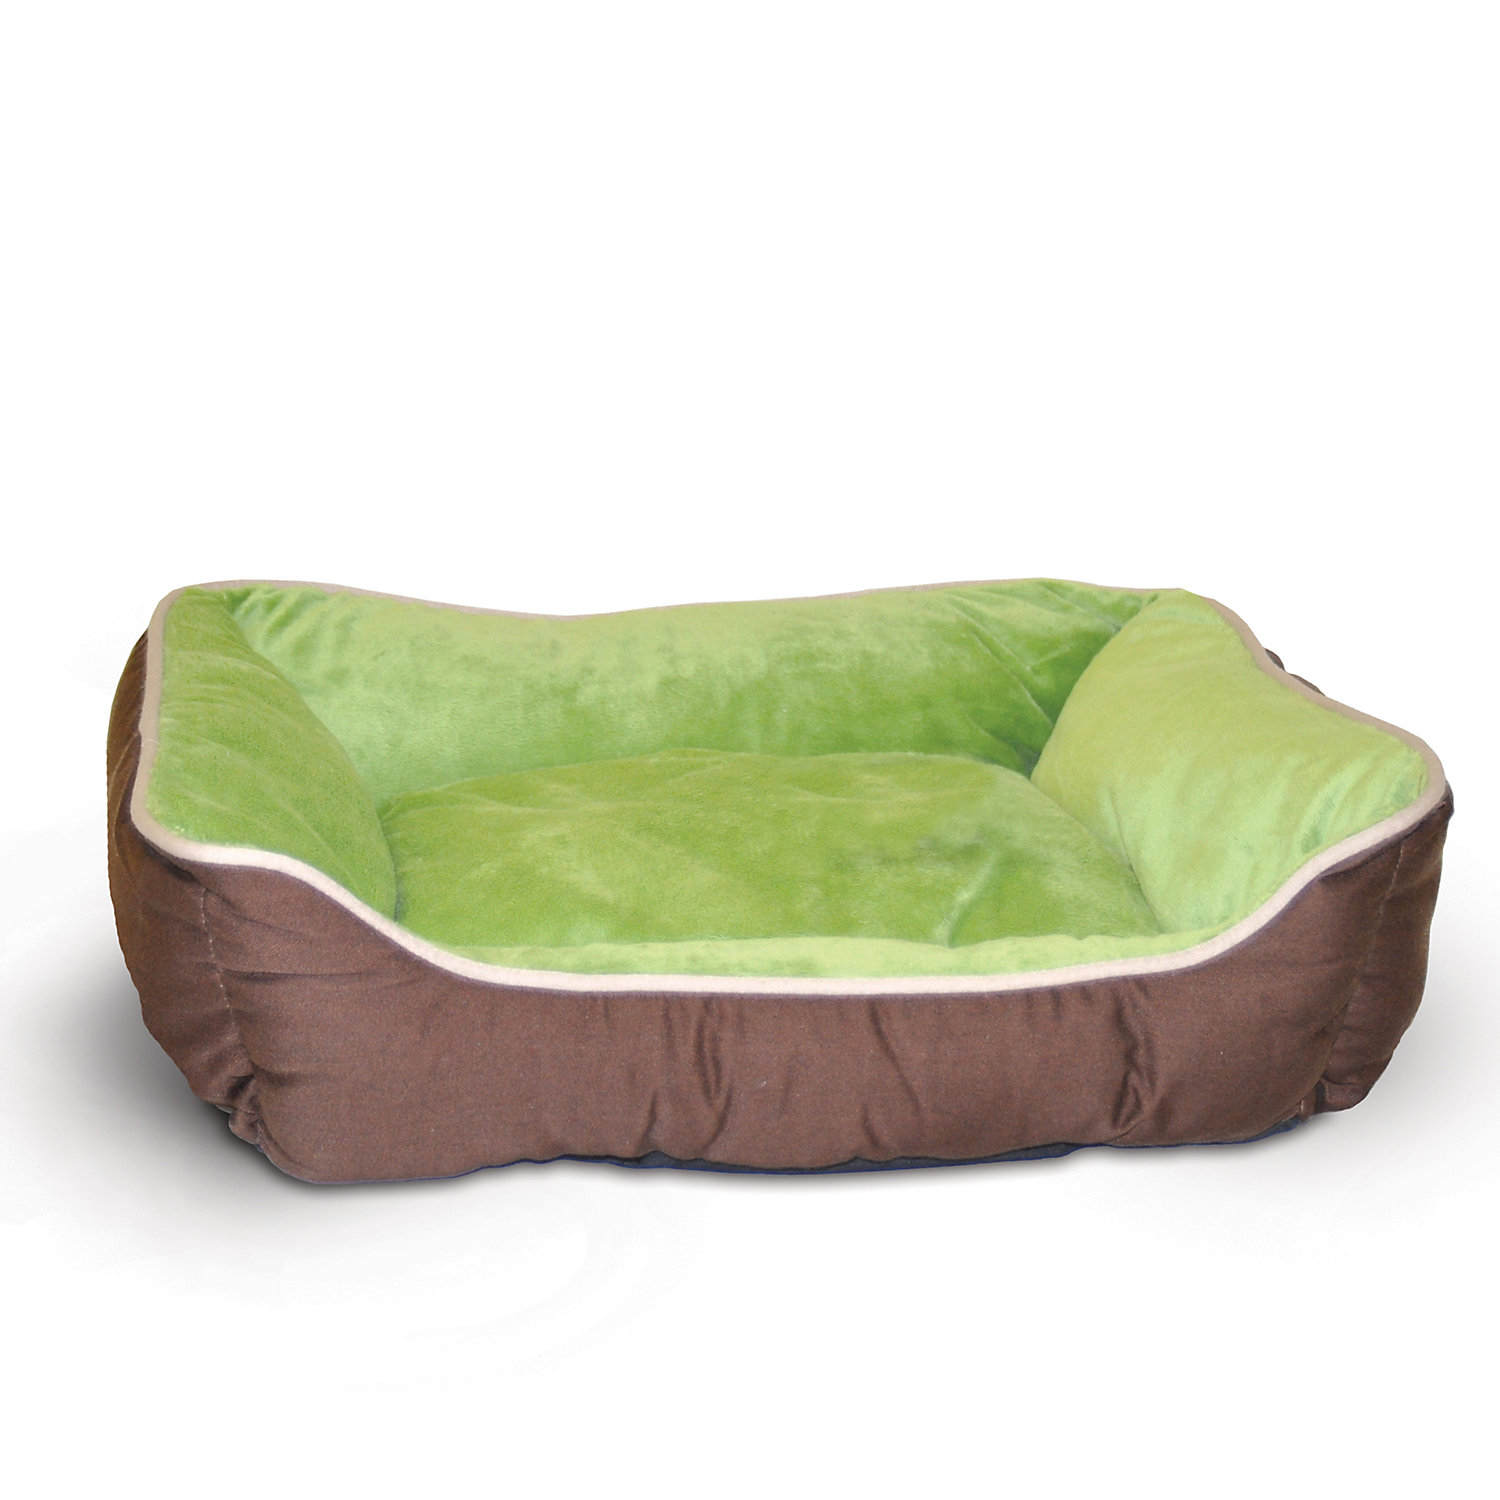 K&h Mocha & Green Self-warm Lounge Sleeper Self Warming Pet Bed, 20 L X 16 W, Small, Brown / Green